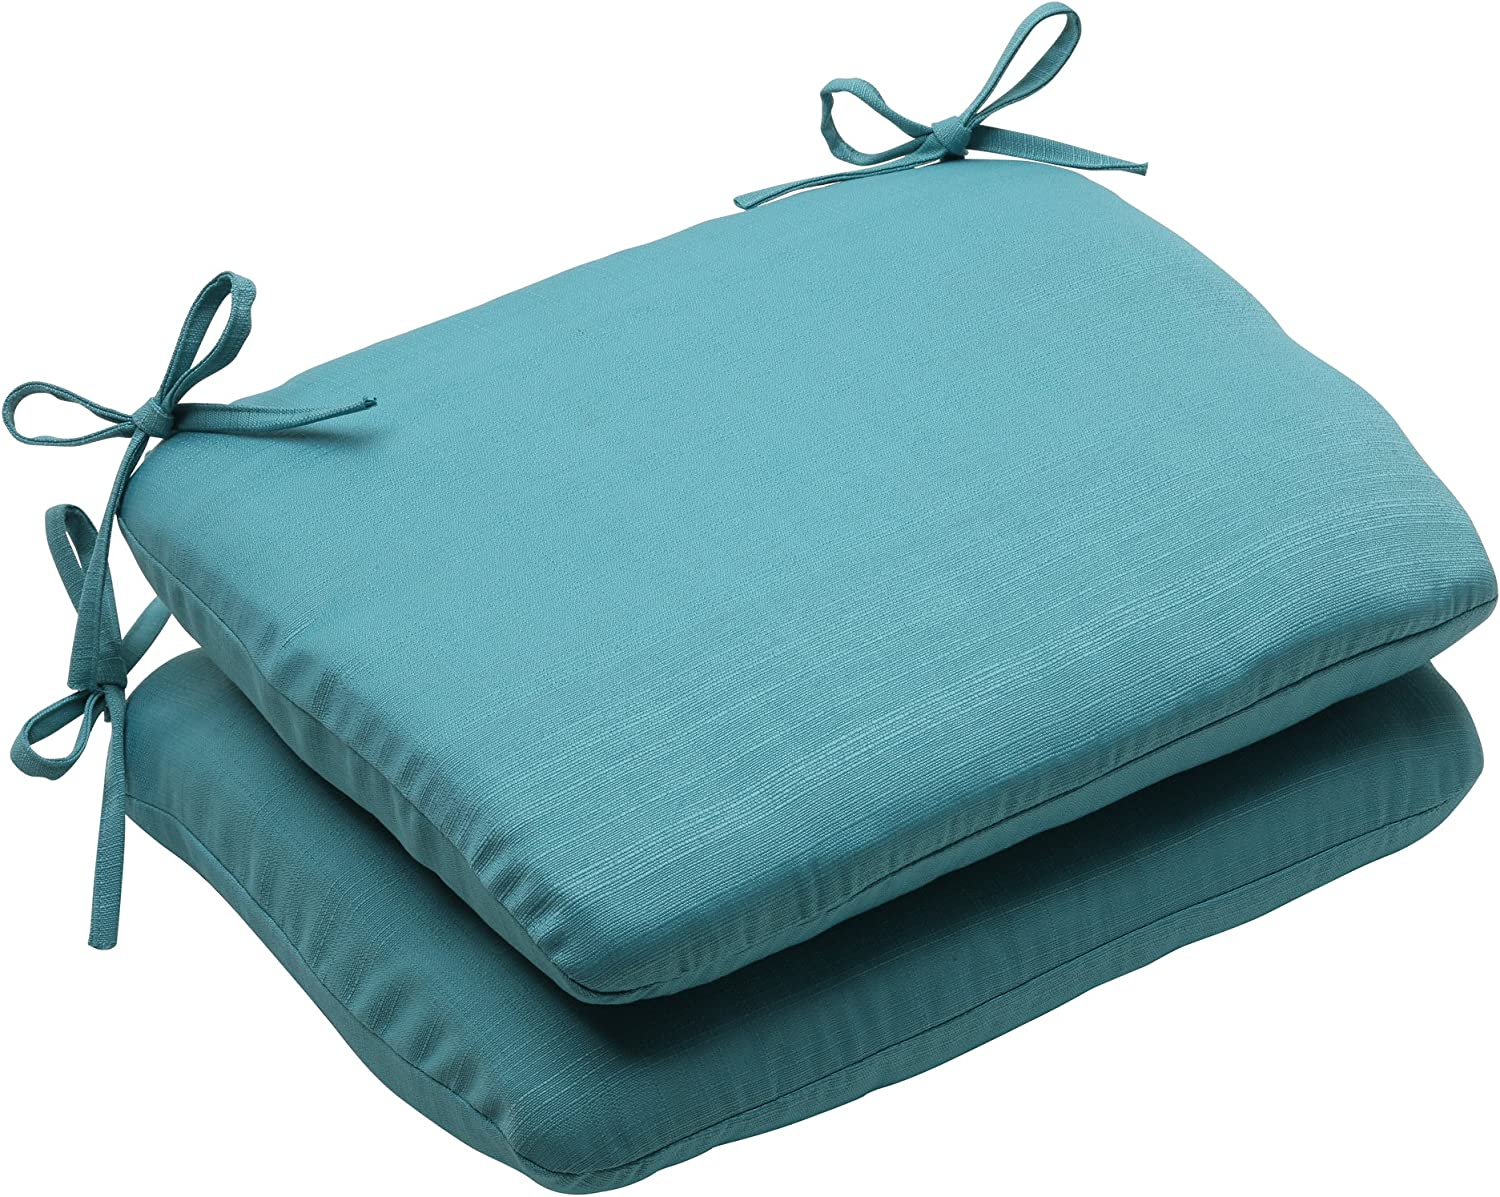 Pillow Perfect Indoor Outdoor Forsyth Rounded Seat Cushion, Turquoise, Set of 2